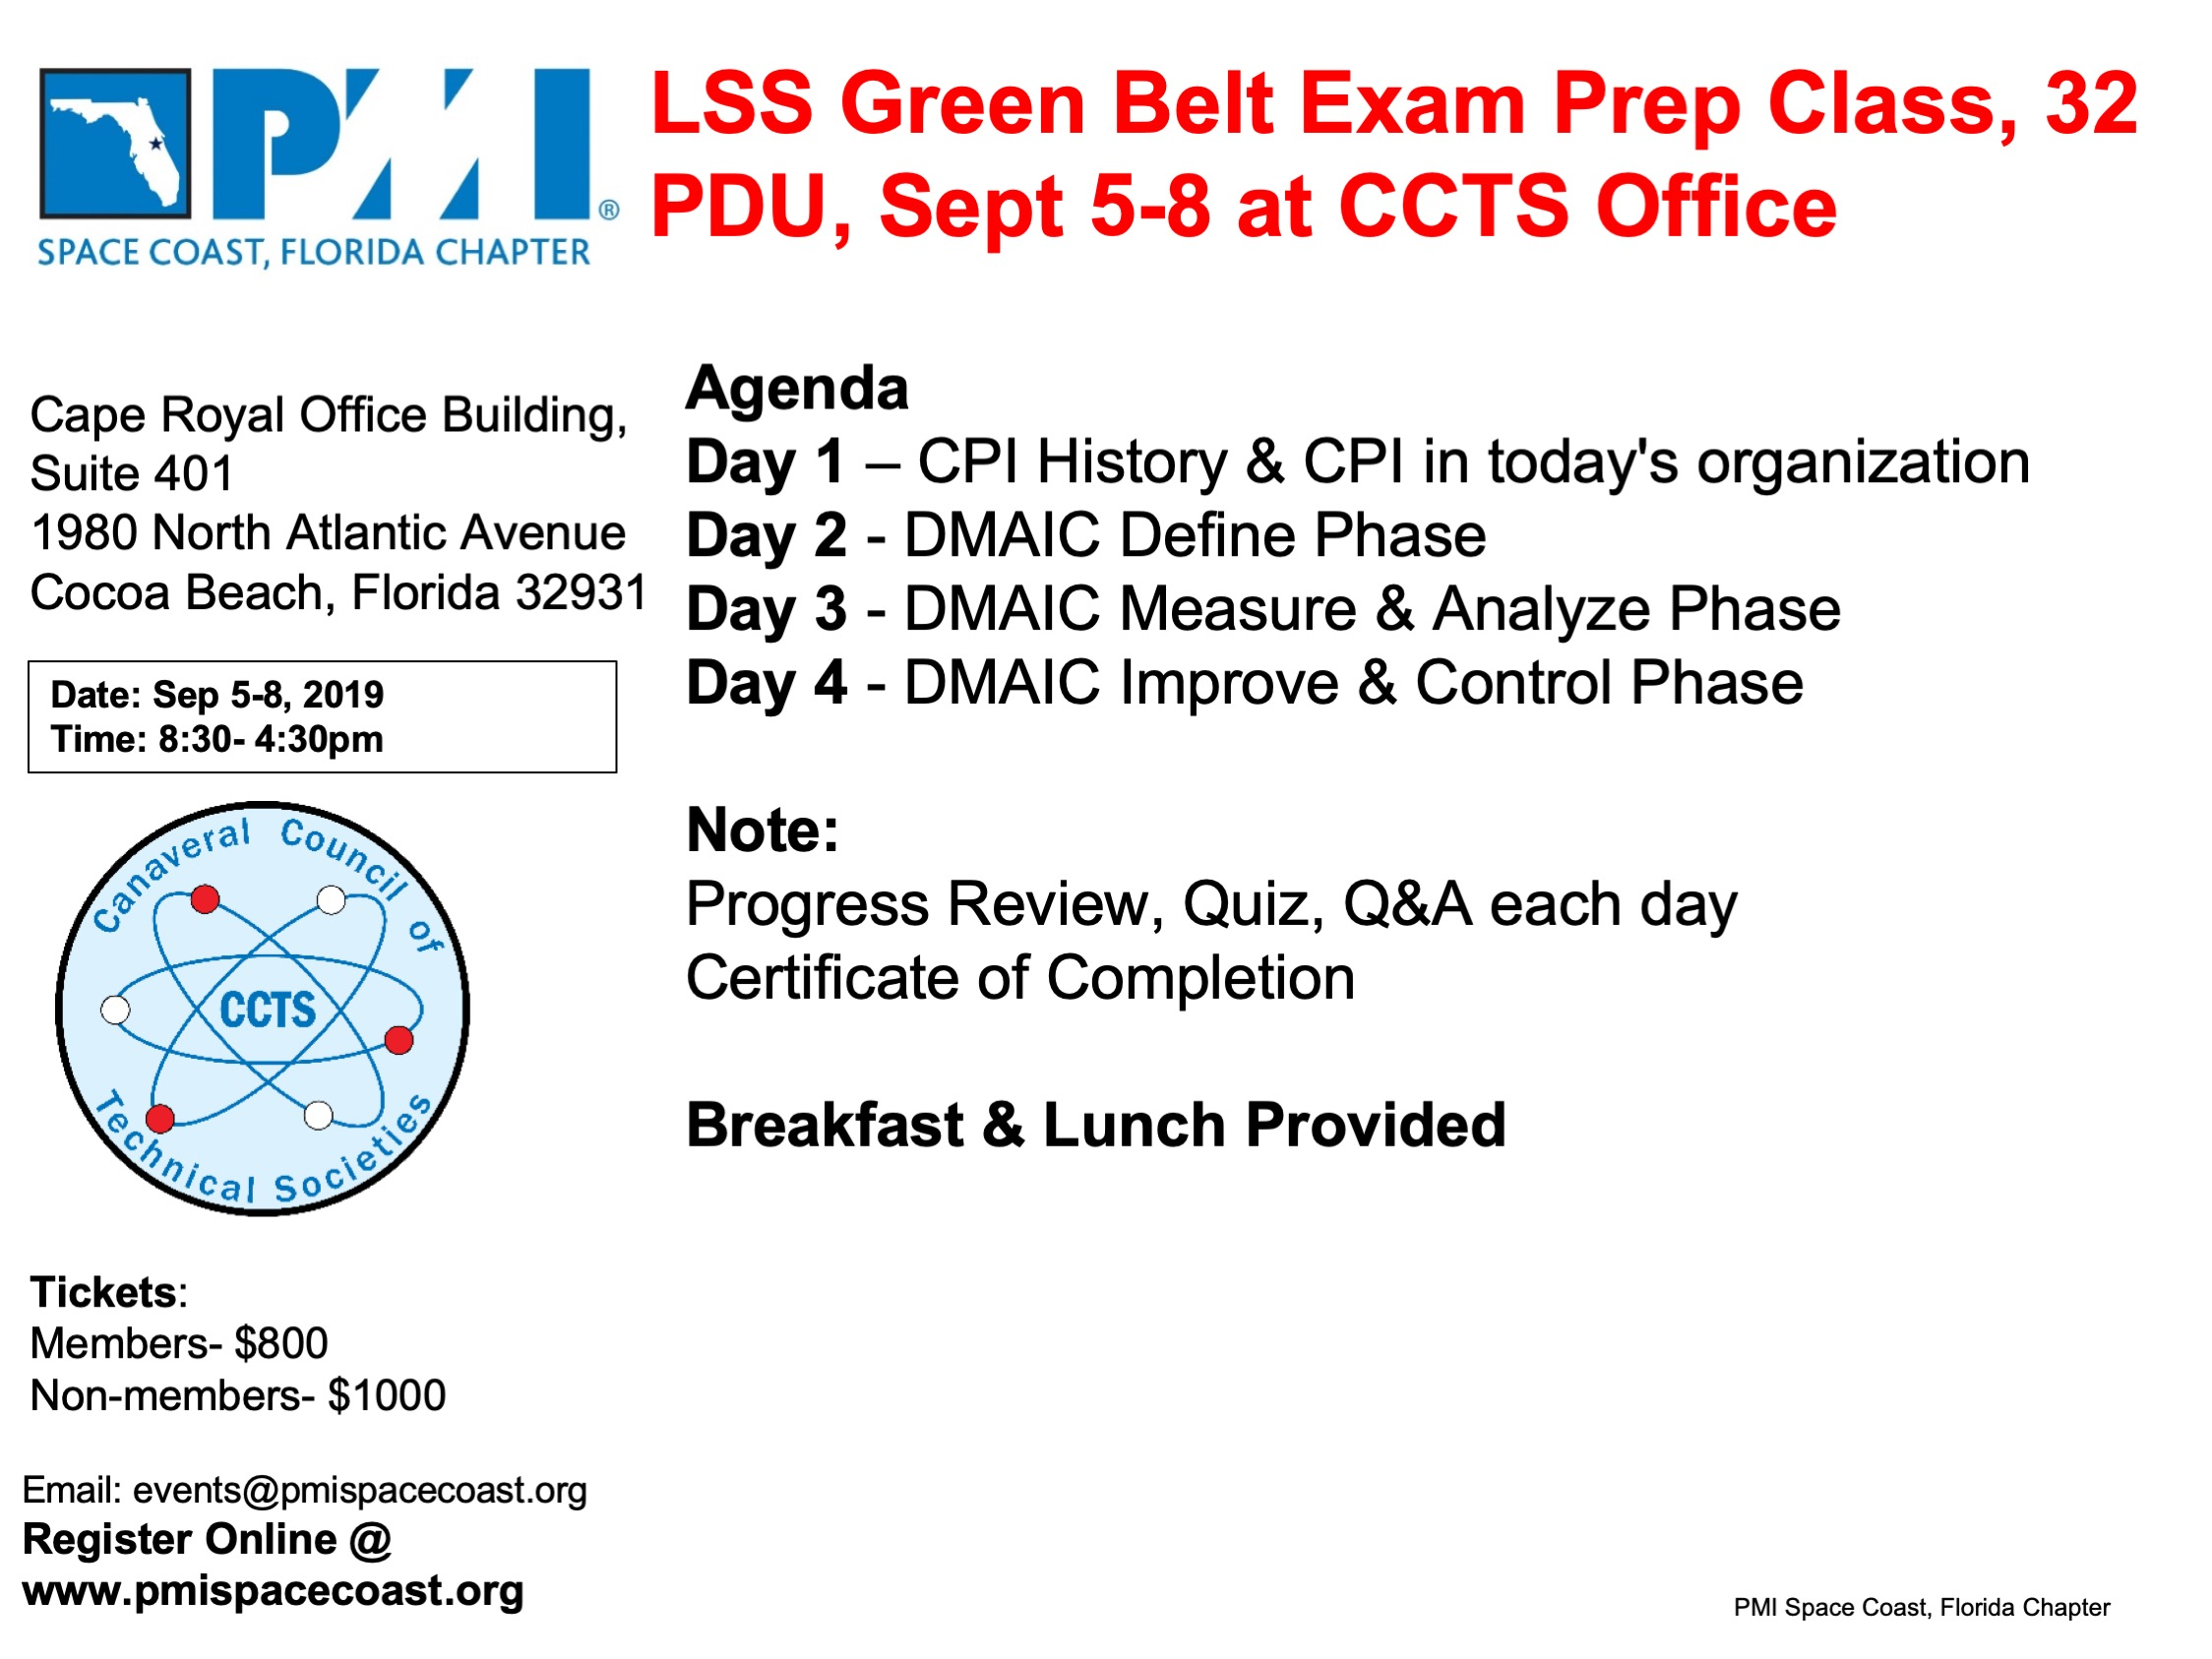 PMI SCFC 2019 Sep LSS GB Class Flyer 1